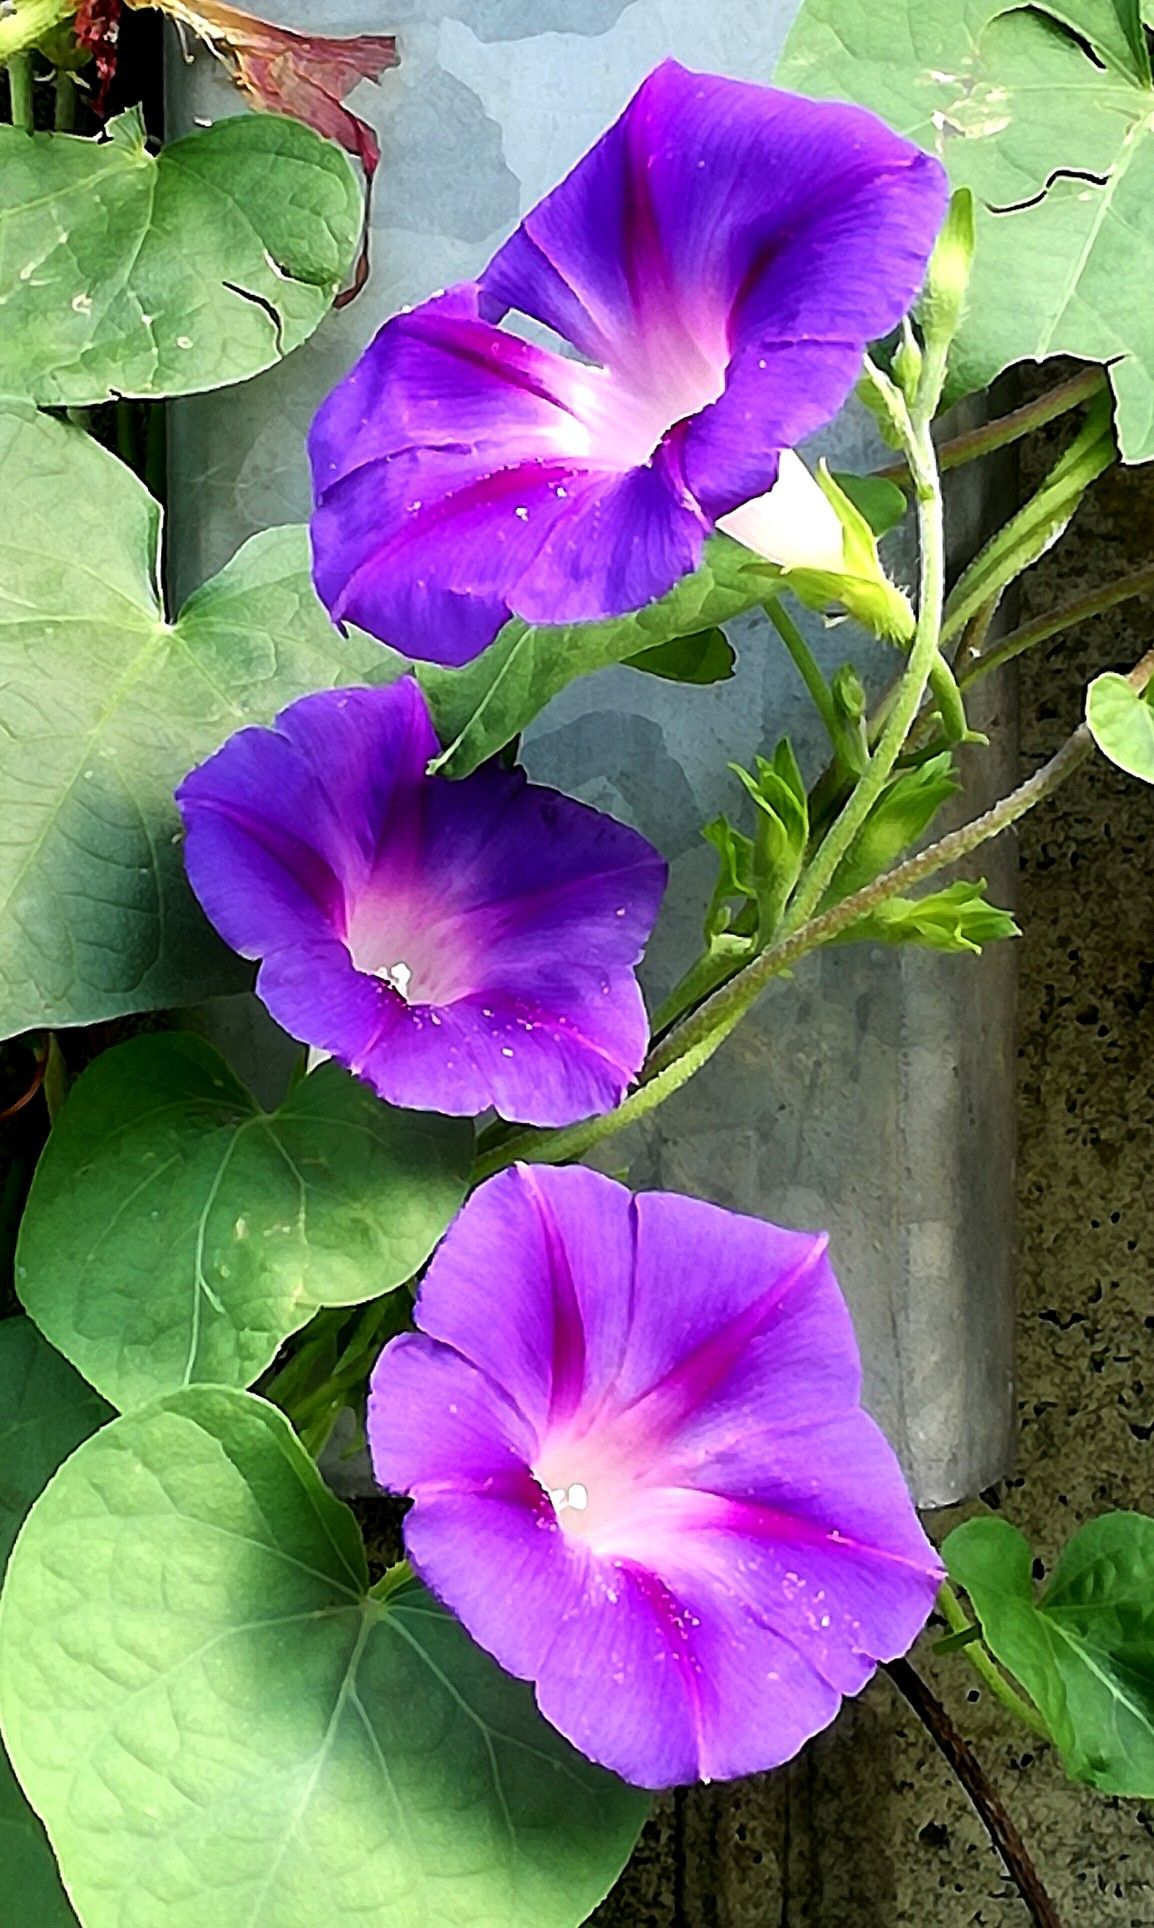 Pin By Patricia Parden 1 On Beautifull Flowers Morning Glory Flowers Flowers Photography Flower Garden Plans